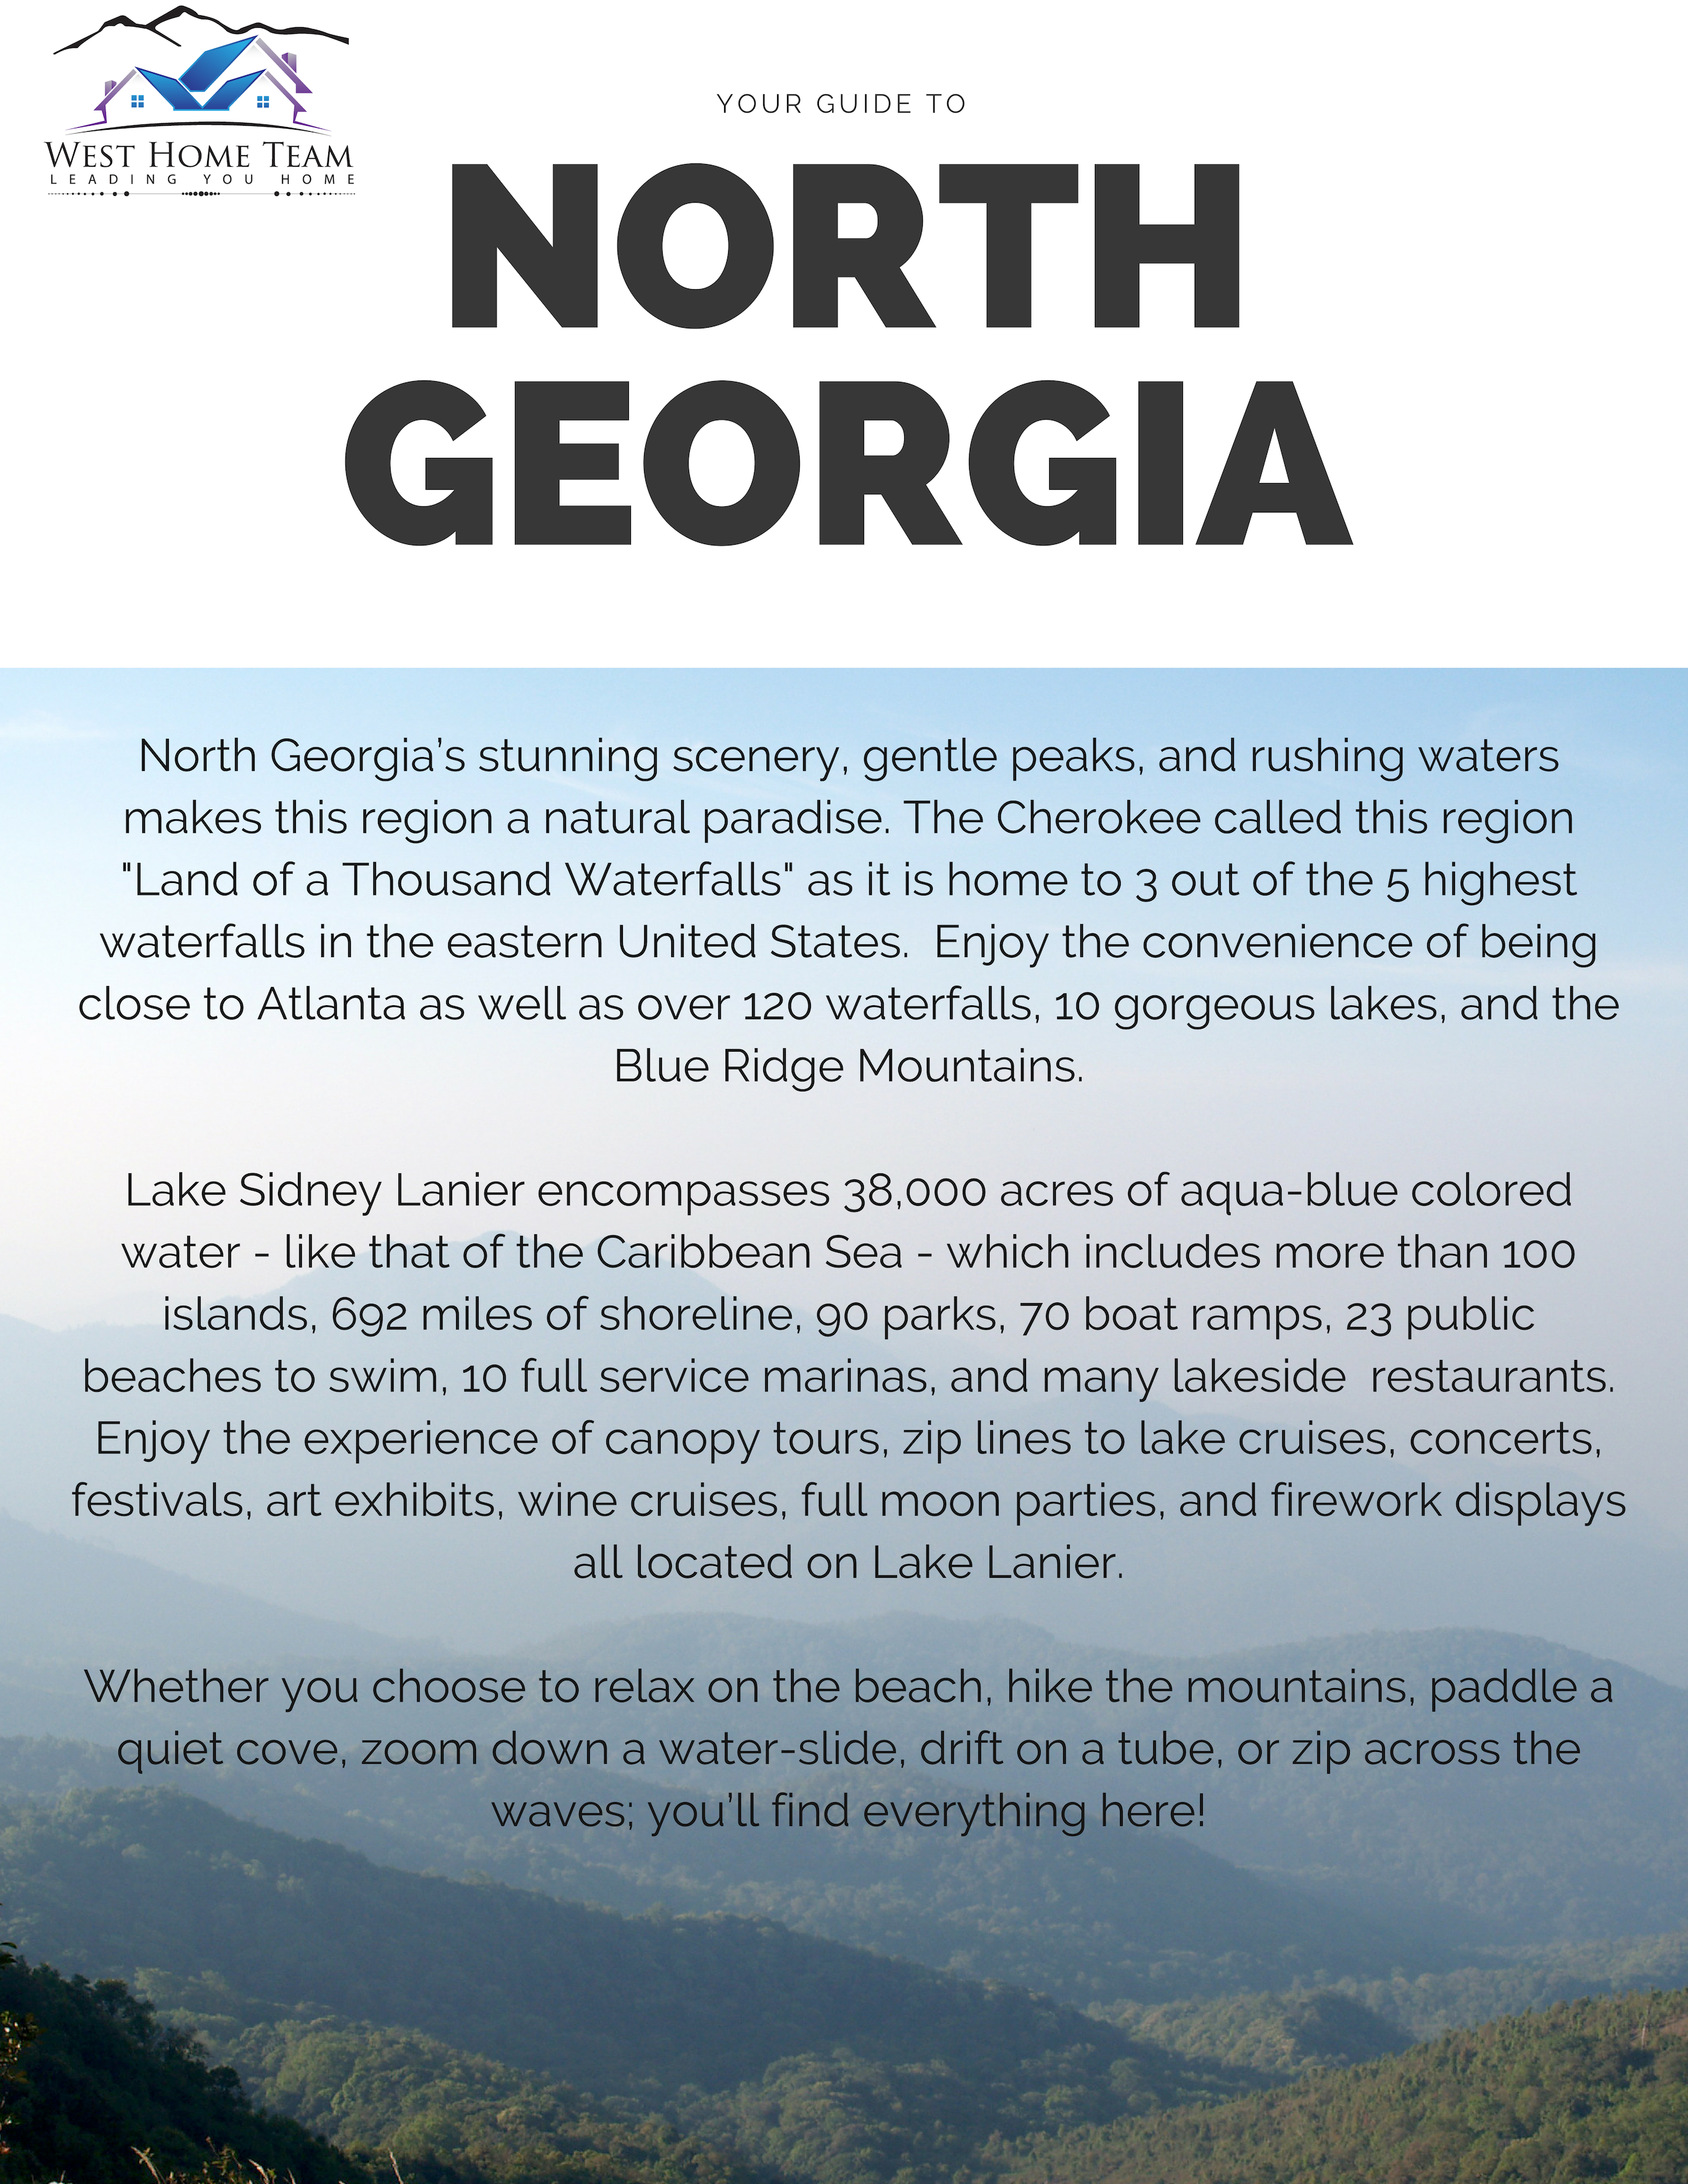 Places To Eat and Things To Do in North GA